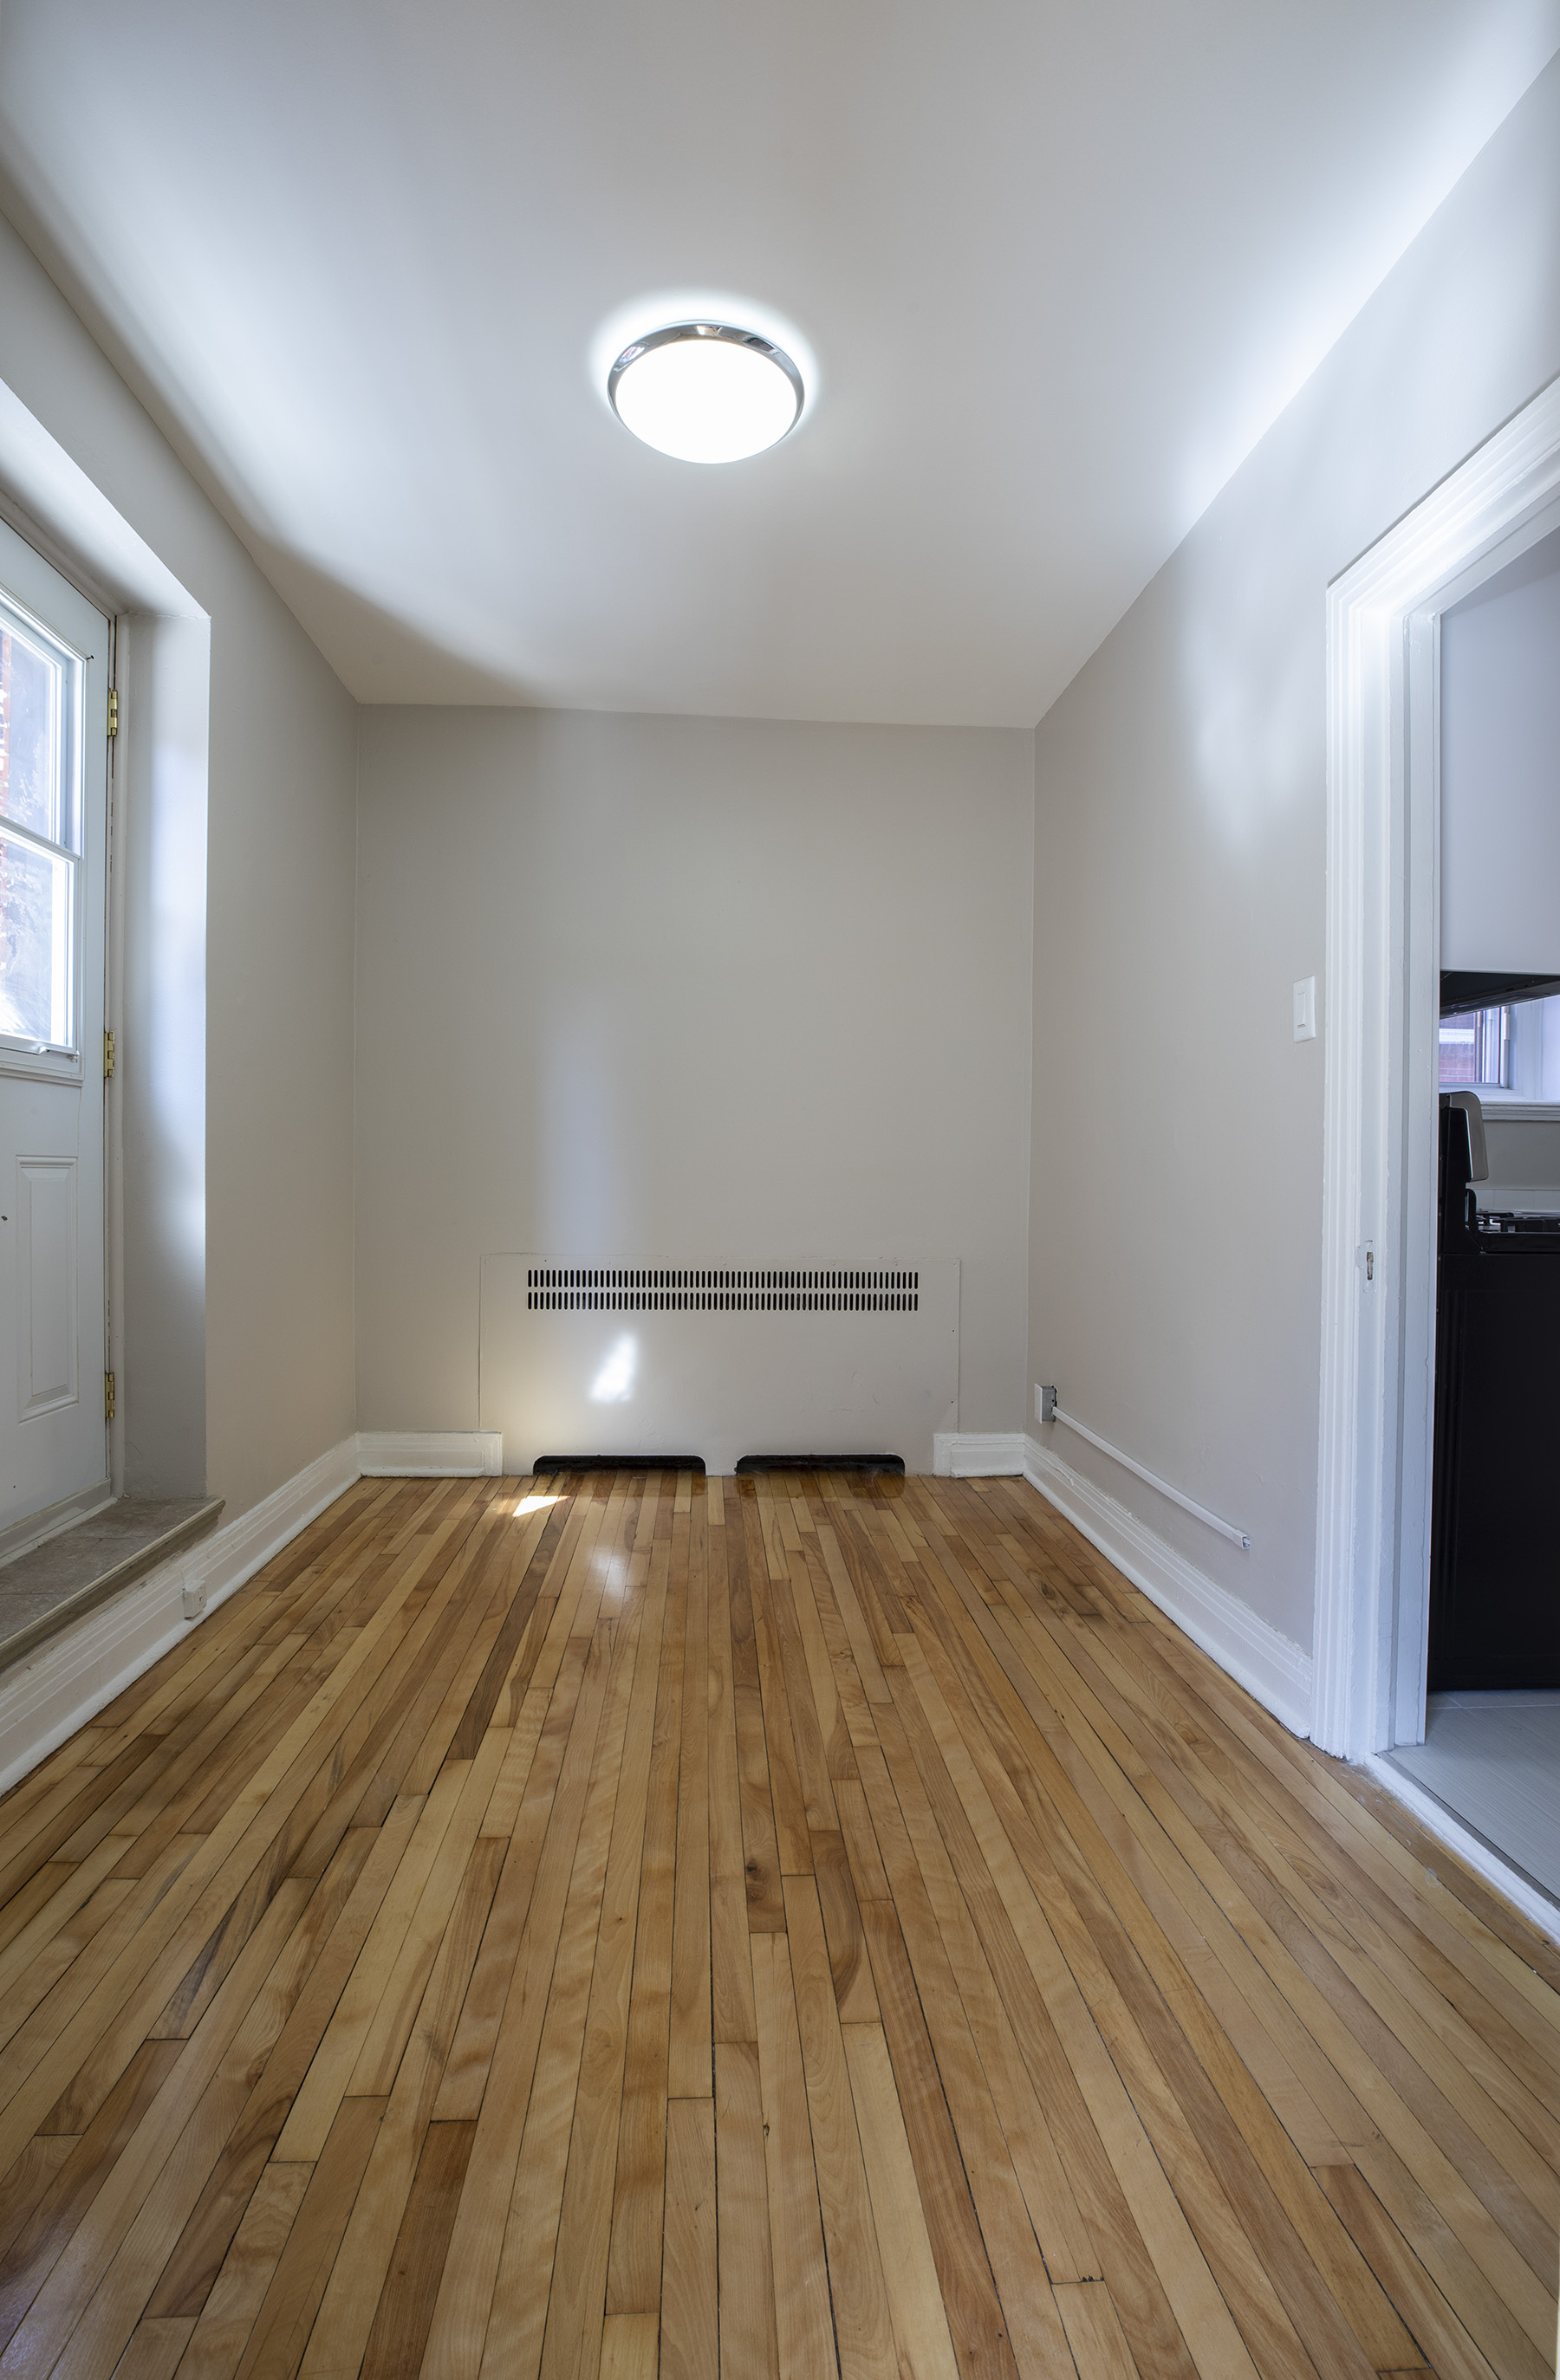 3 bedroom Apartments for rent in Cote-des-Neiges at 5000 Clanranald - Photo 11 - RentQuebecApartments – L401549